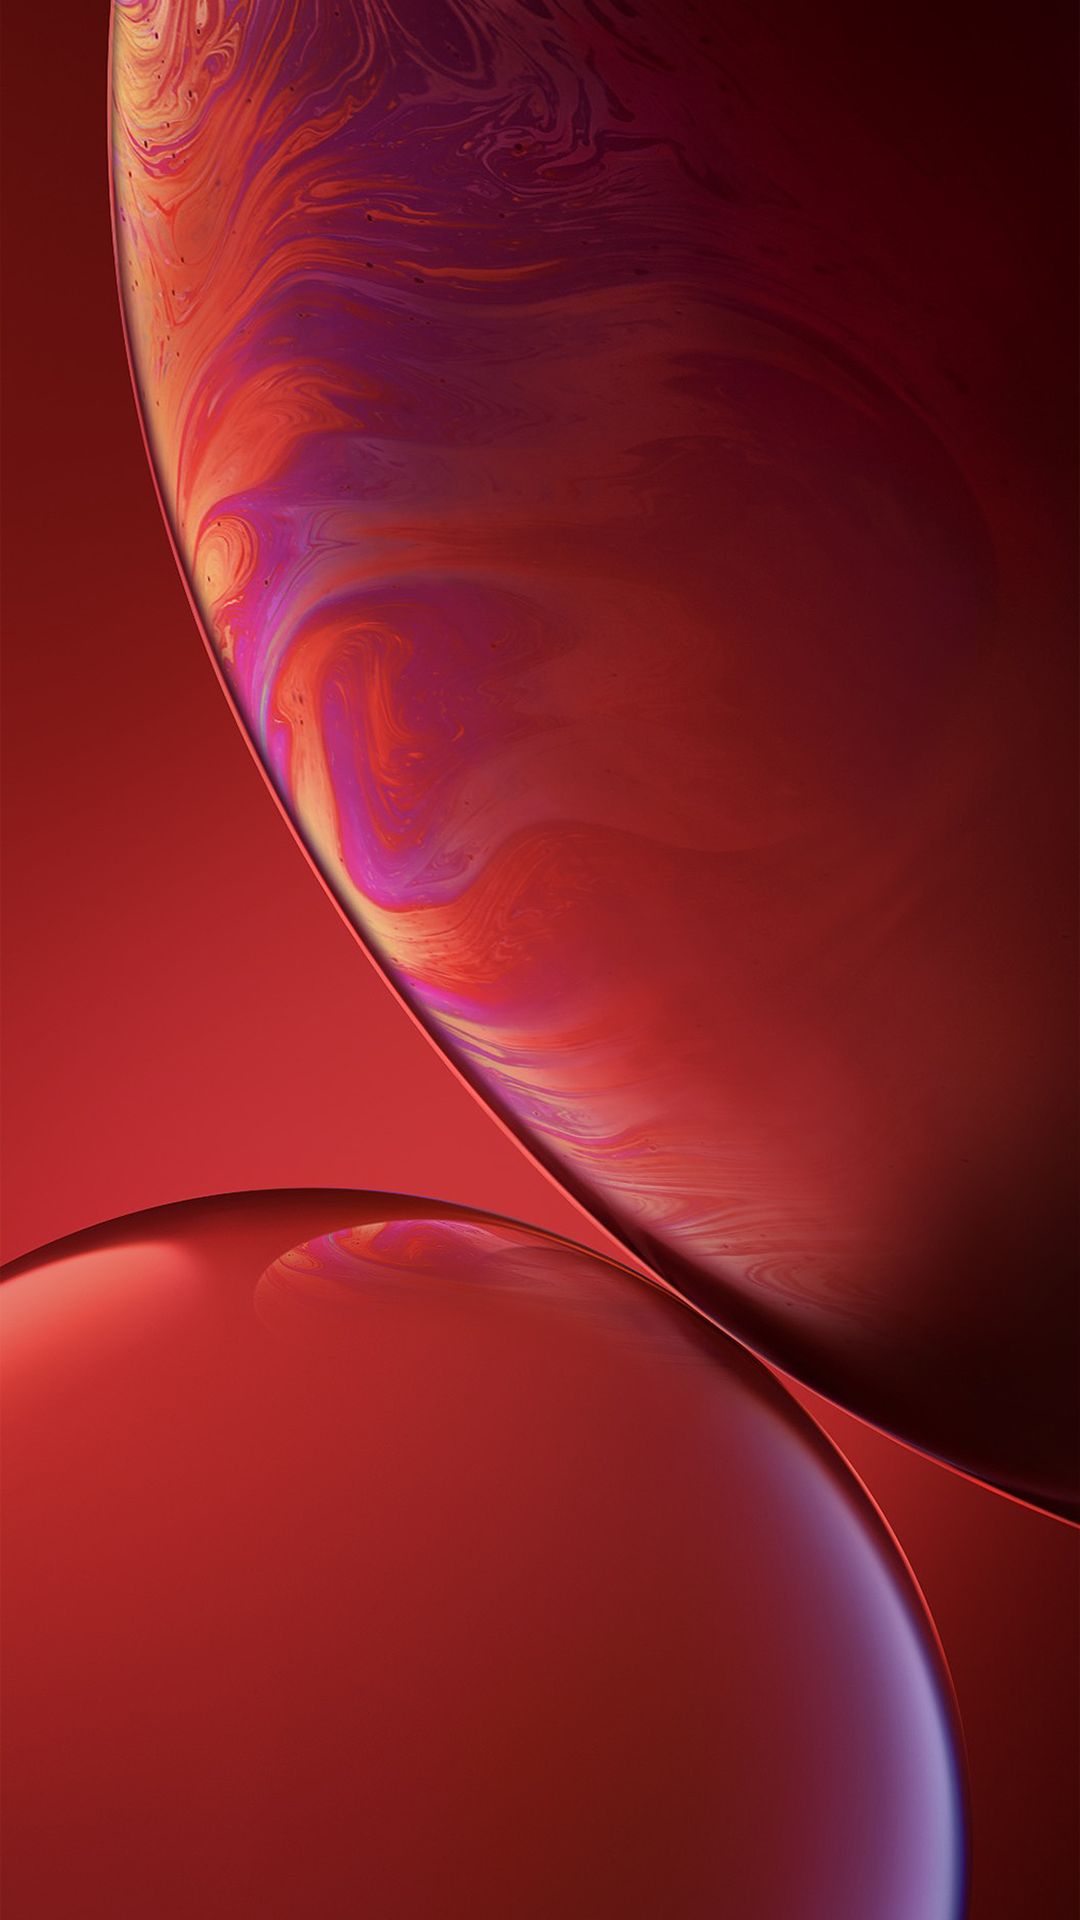 Iphone xr Wallpaper Iphone duvar kağıtları, Telefon